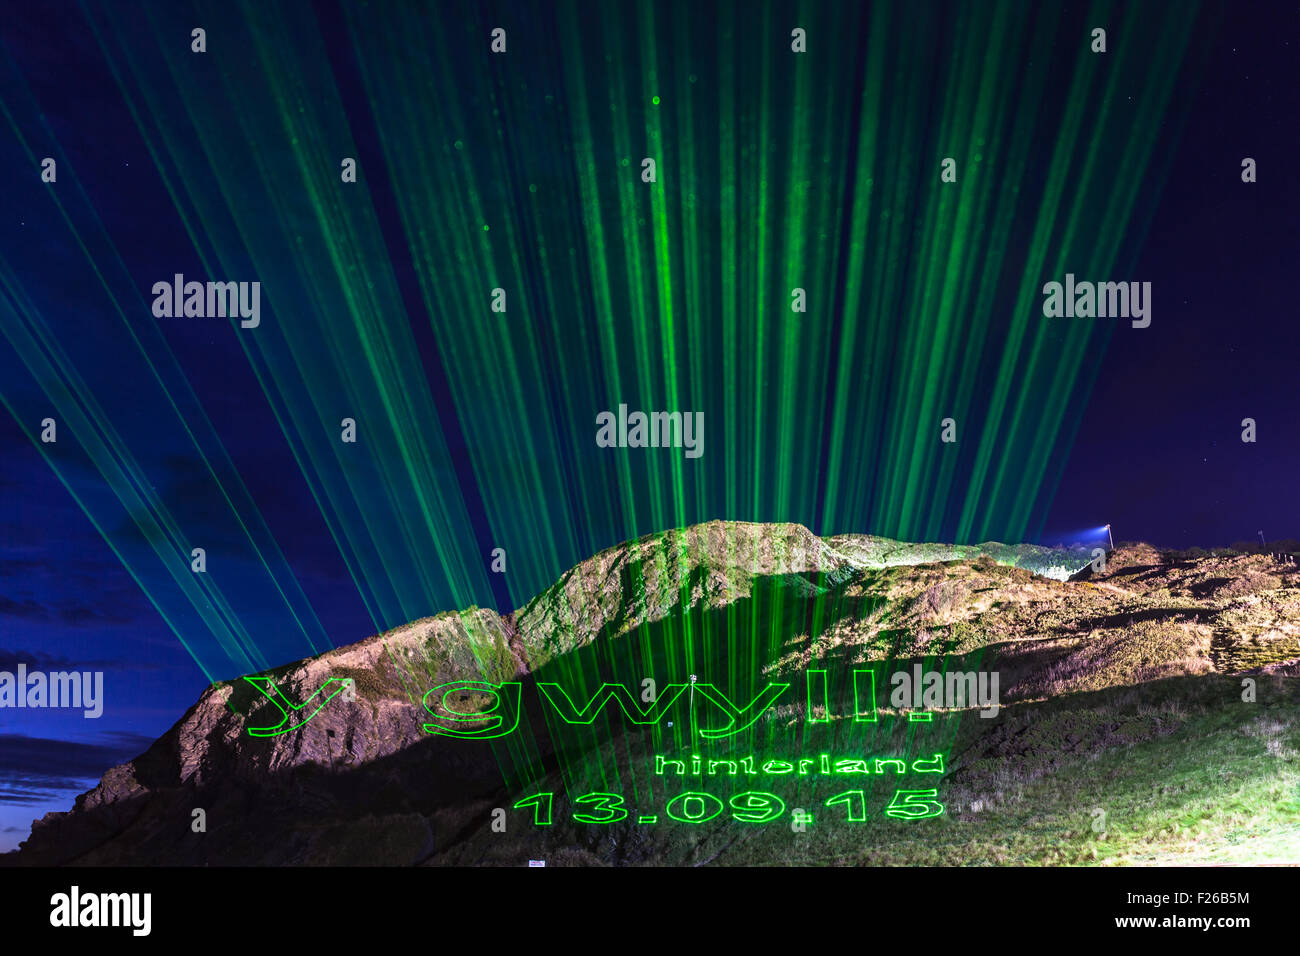 Aberystwyth, UK. 12th Sep, 2015. Y Gwyll / Hinterland being projected onto Aberystwyth Constitution Hill in preparation - Stock Image